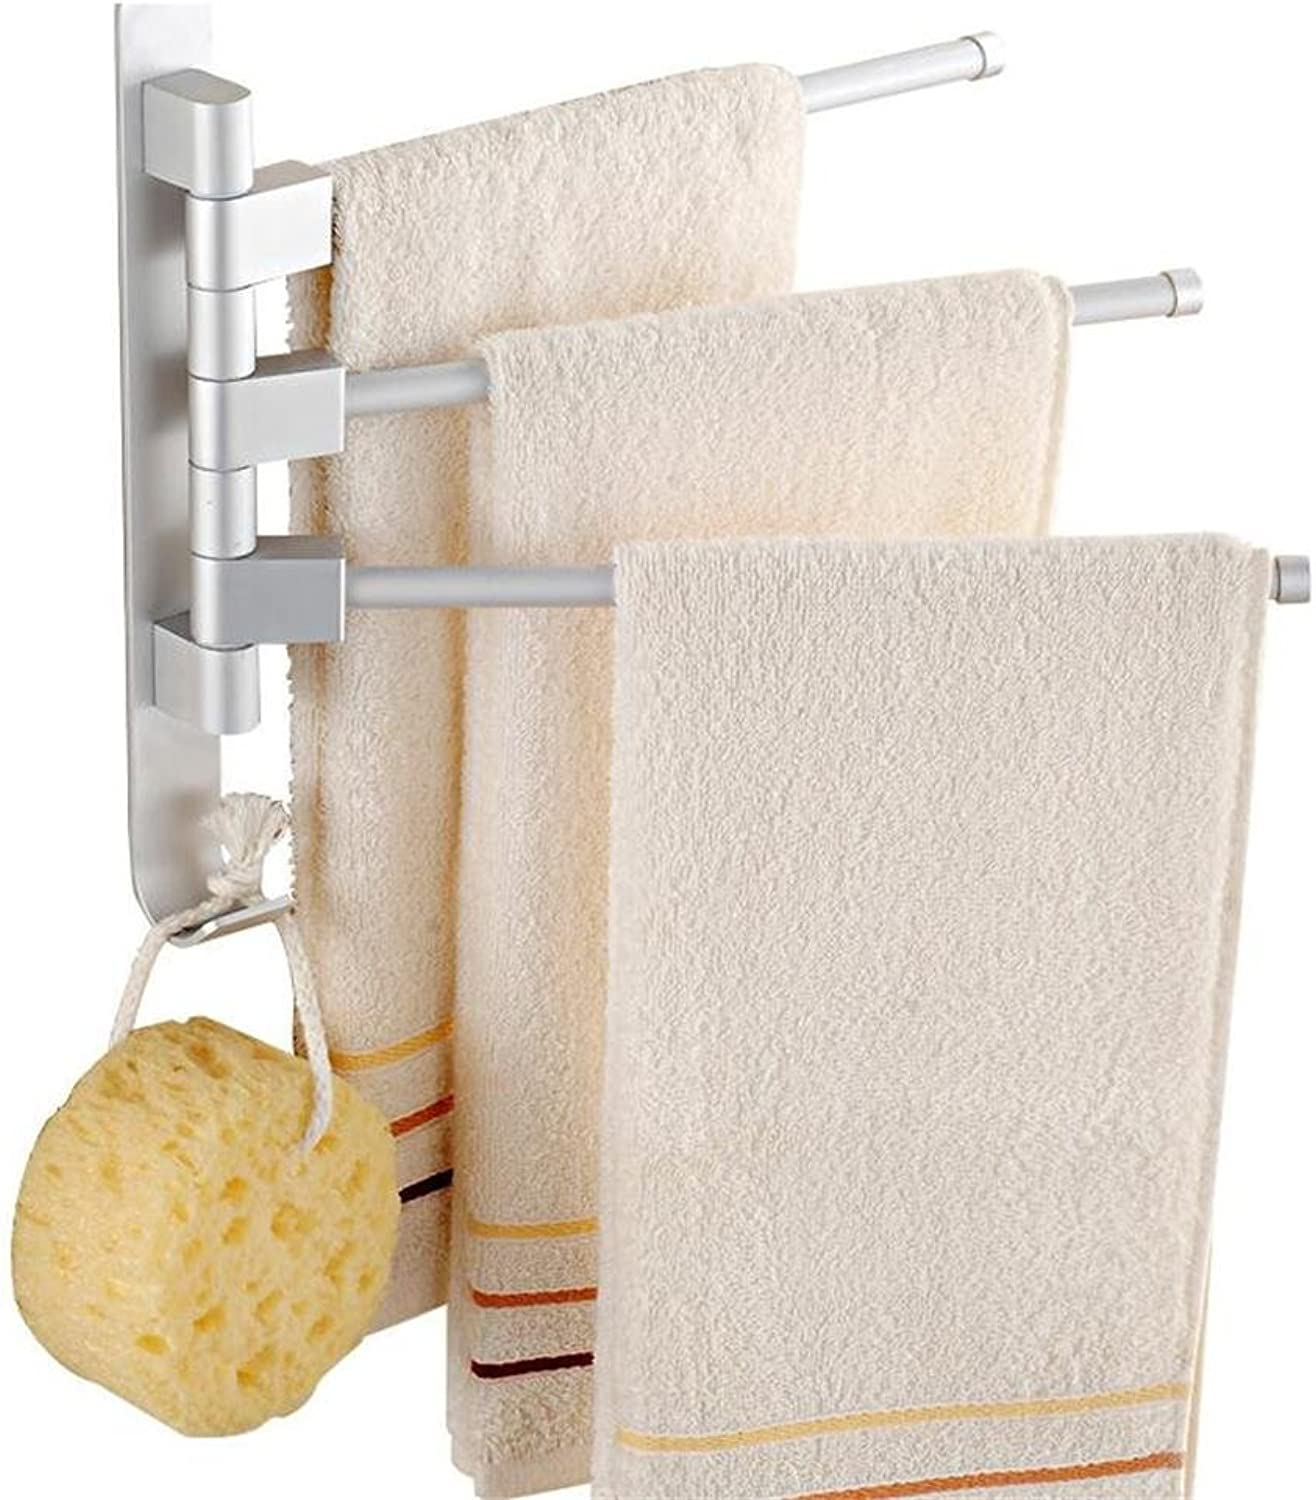 MX Towel Stands Towel Rack - Space Aluminum, 180° Active, Oxidized, Multi-bar, Wall-Mounted Bathroom Perforated Towel Rack, Suitable for Bathroom, Home - 60x14cm @ (color   Three Shots)